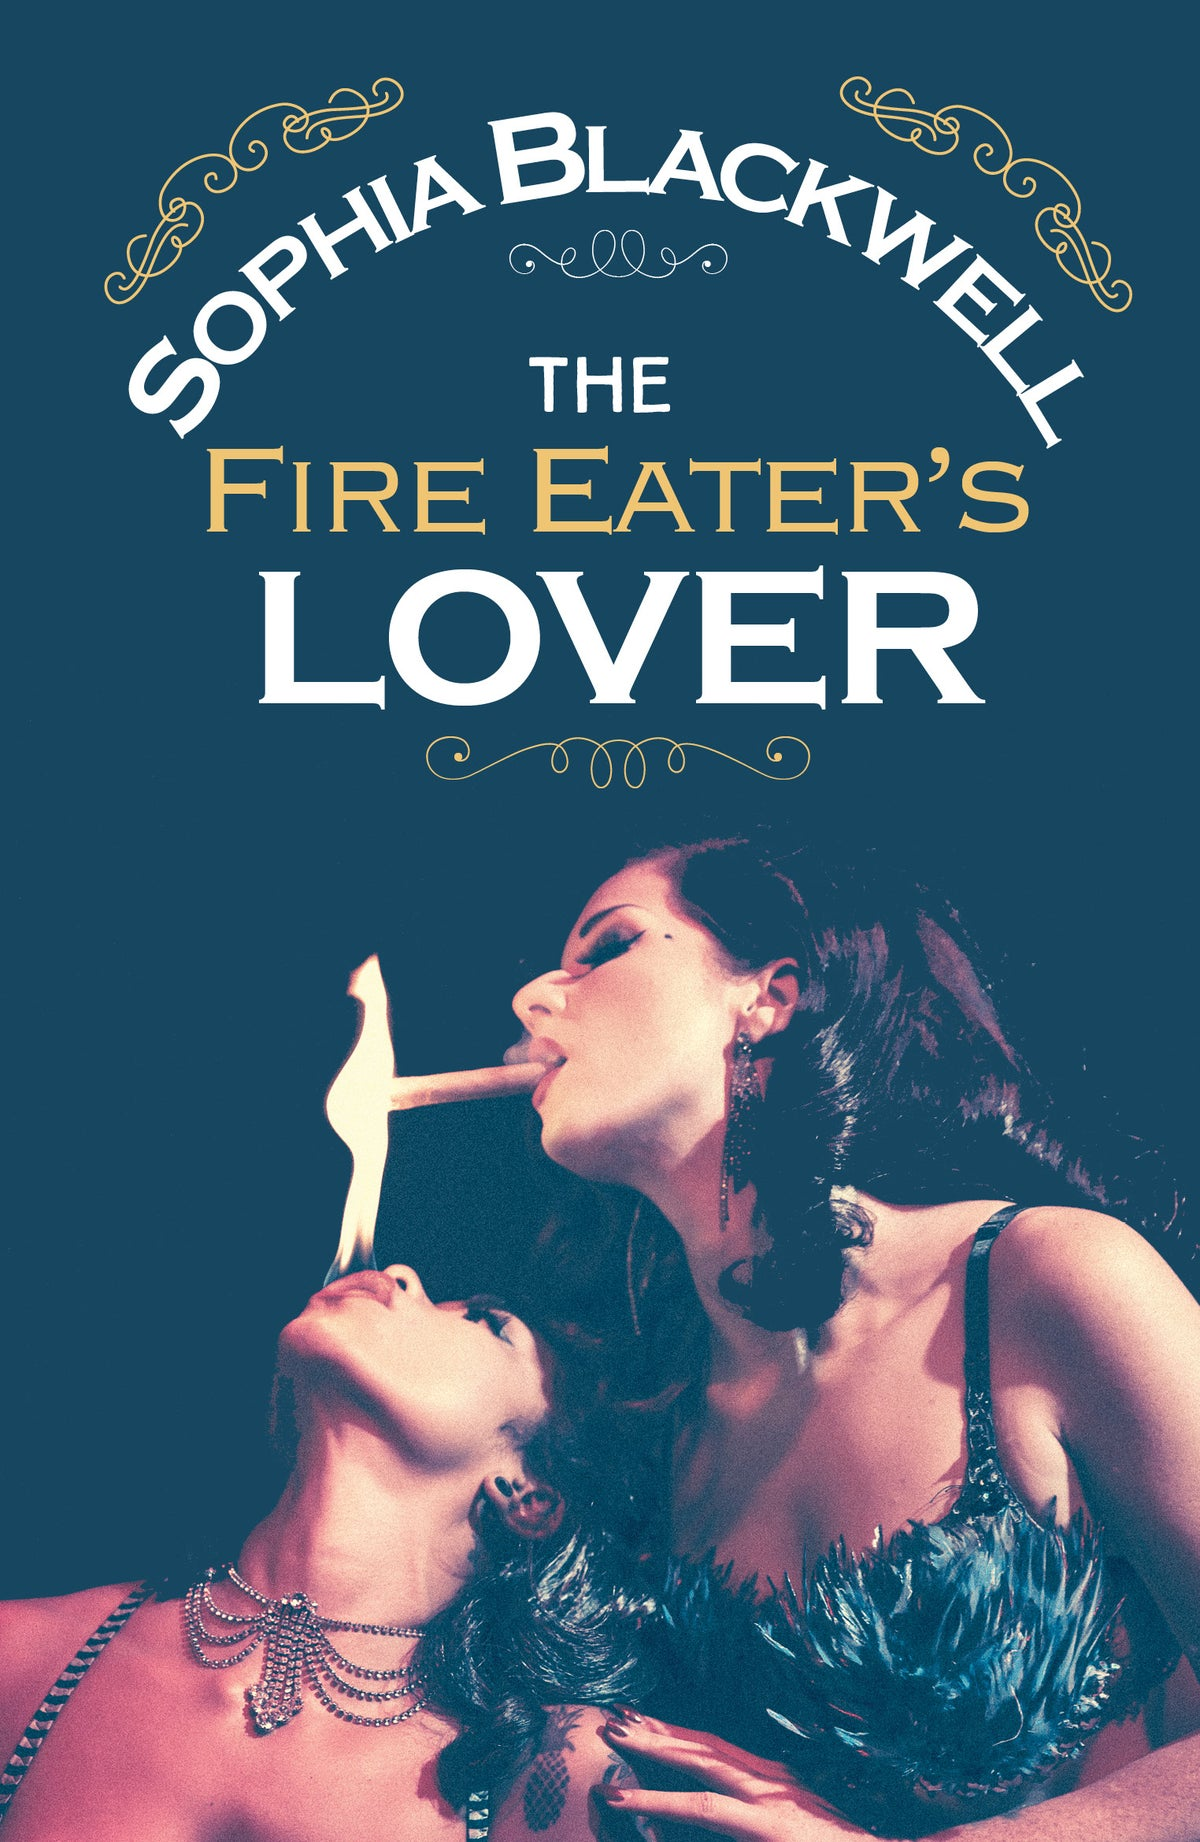 Image of The Fire Eater's Lover by Sophia Blackwell